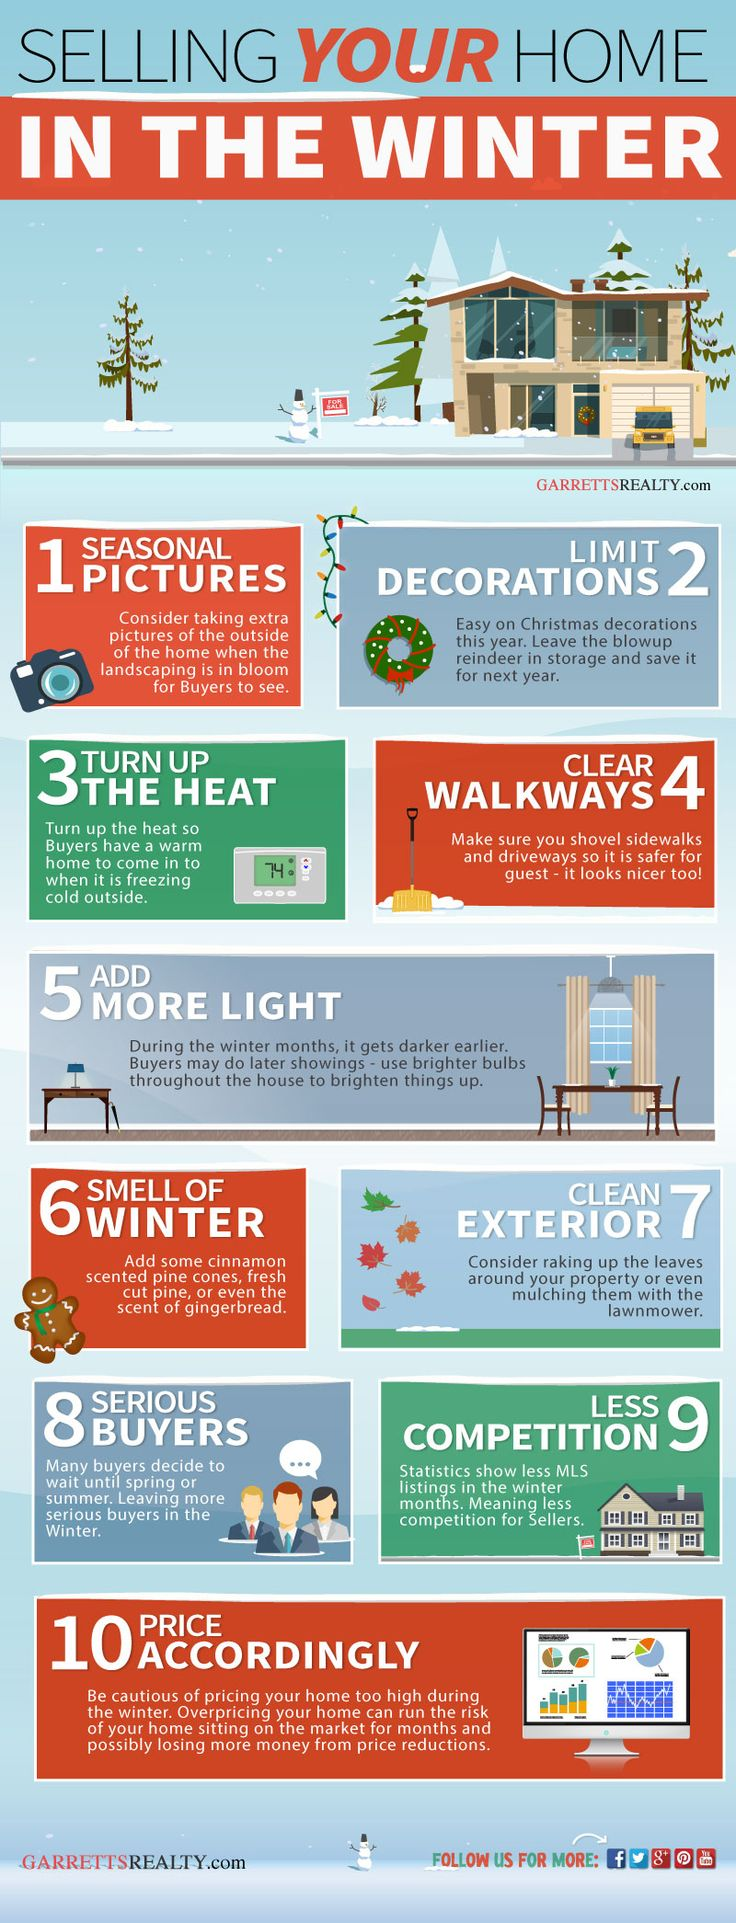 Selling home during the Winter INFOGRAPHIC #RealEstate